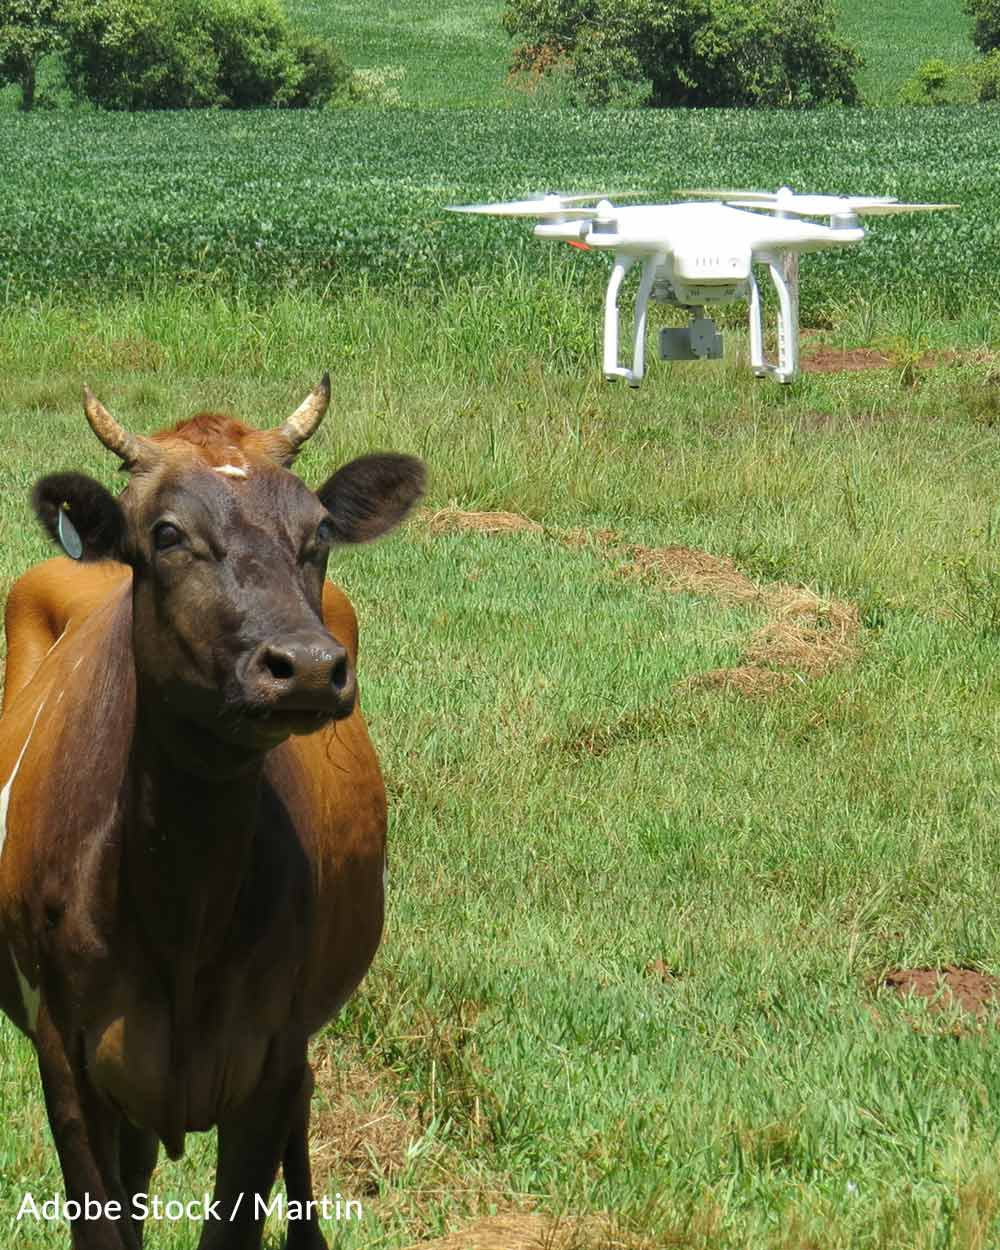 Not all animals are comfortable around drones.